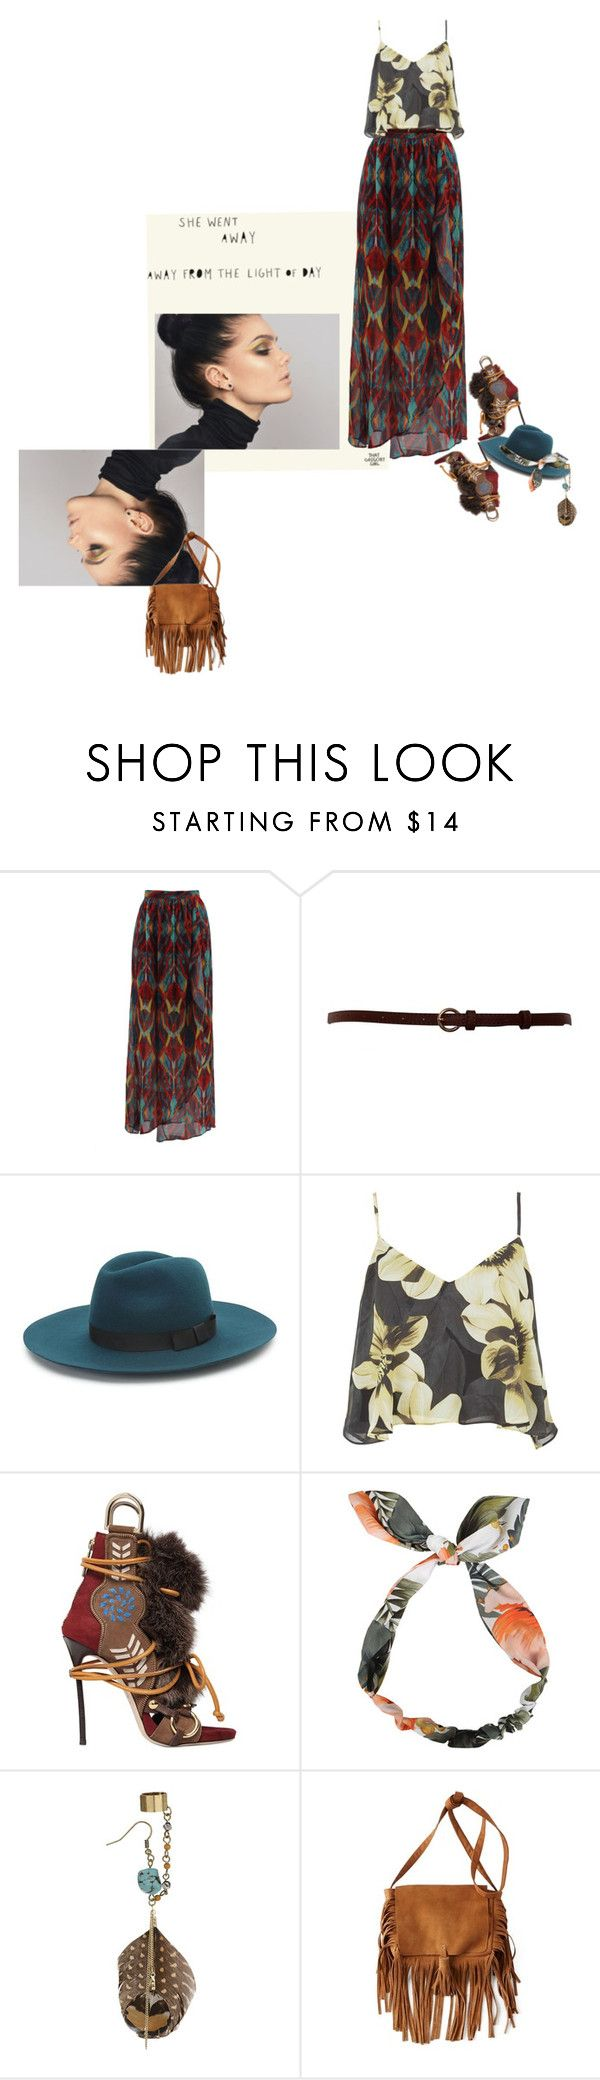 """Molim te da sve ovo ja ne sanjam."" by jana-juli ❤ liked on Polyvore featuring Alice + Olivia, Kendall + Kylie, Topshop, Dsquared2 and American Eagle Outfitters"